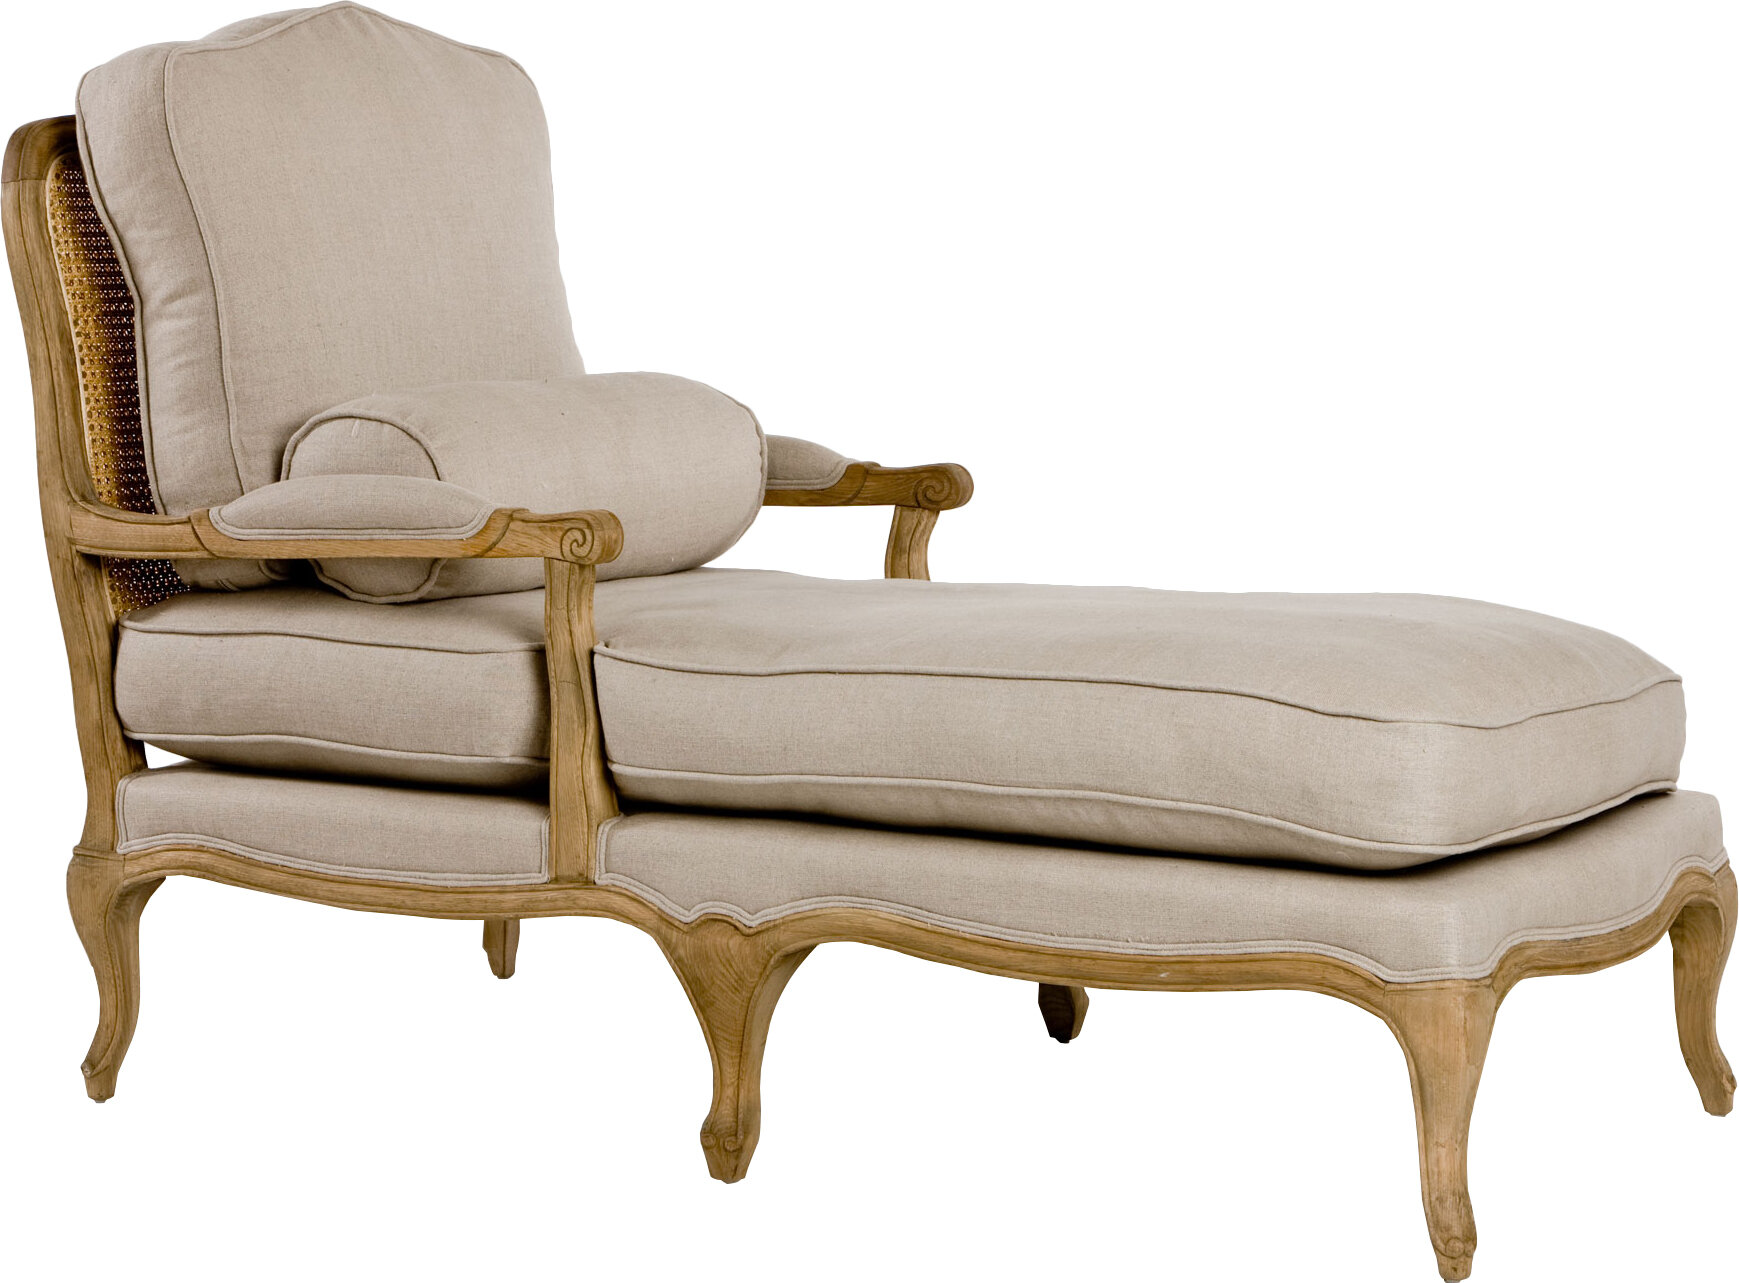 French Country Solid Wood Chaise Lounge Chairs You Ll Love In 2021 Wayfair